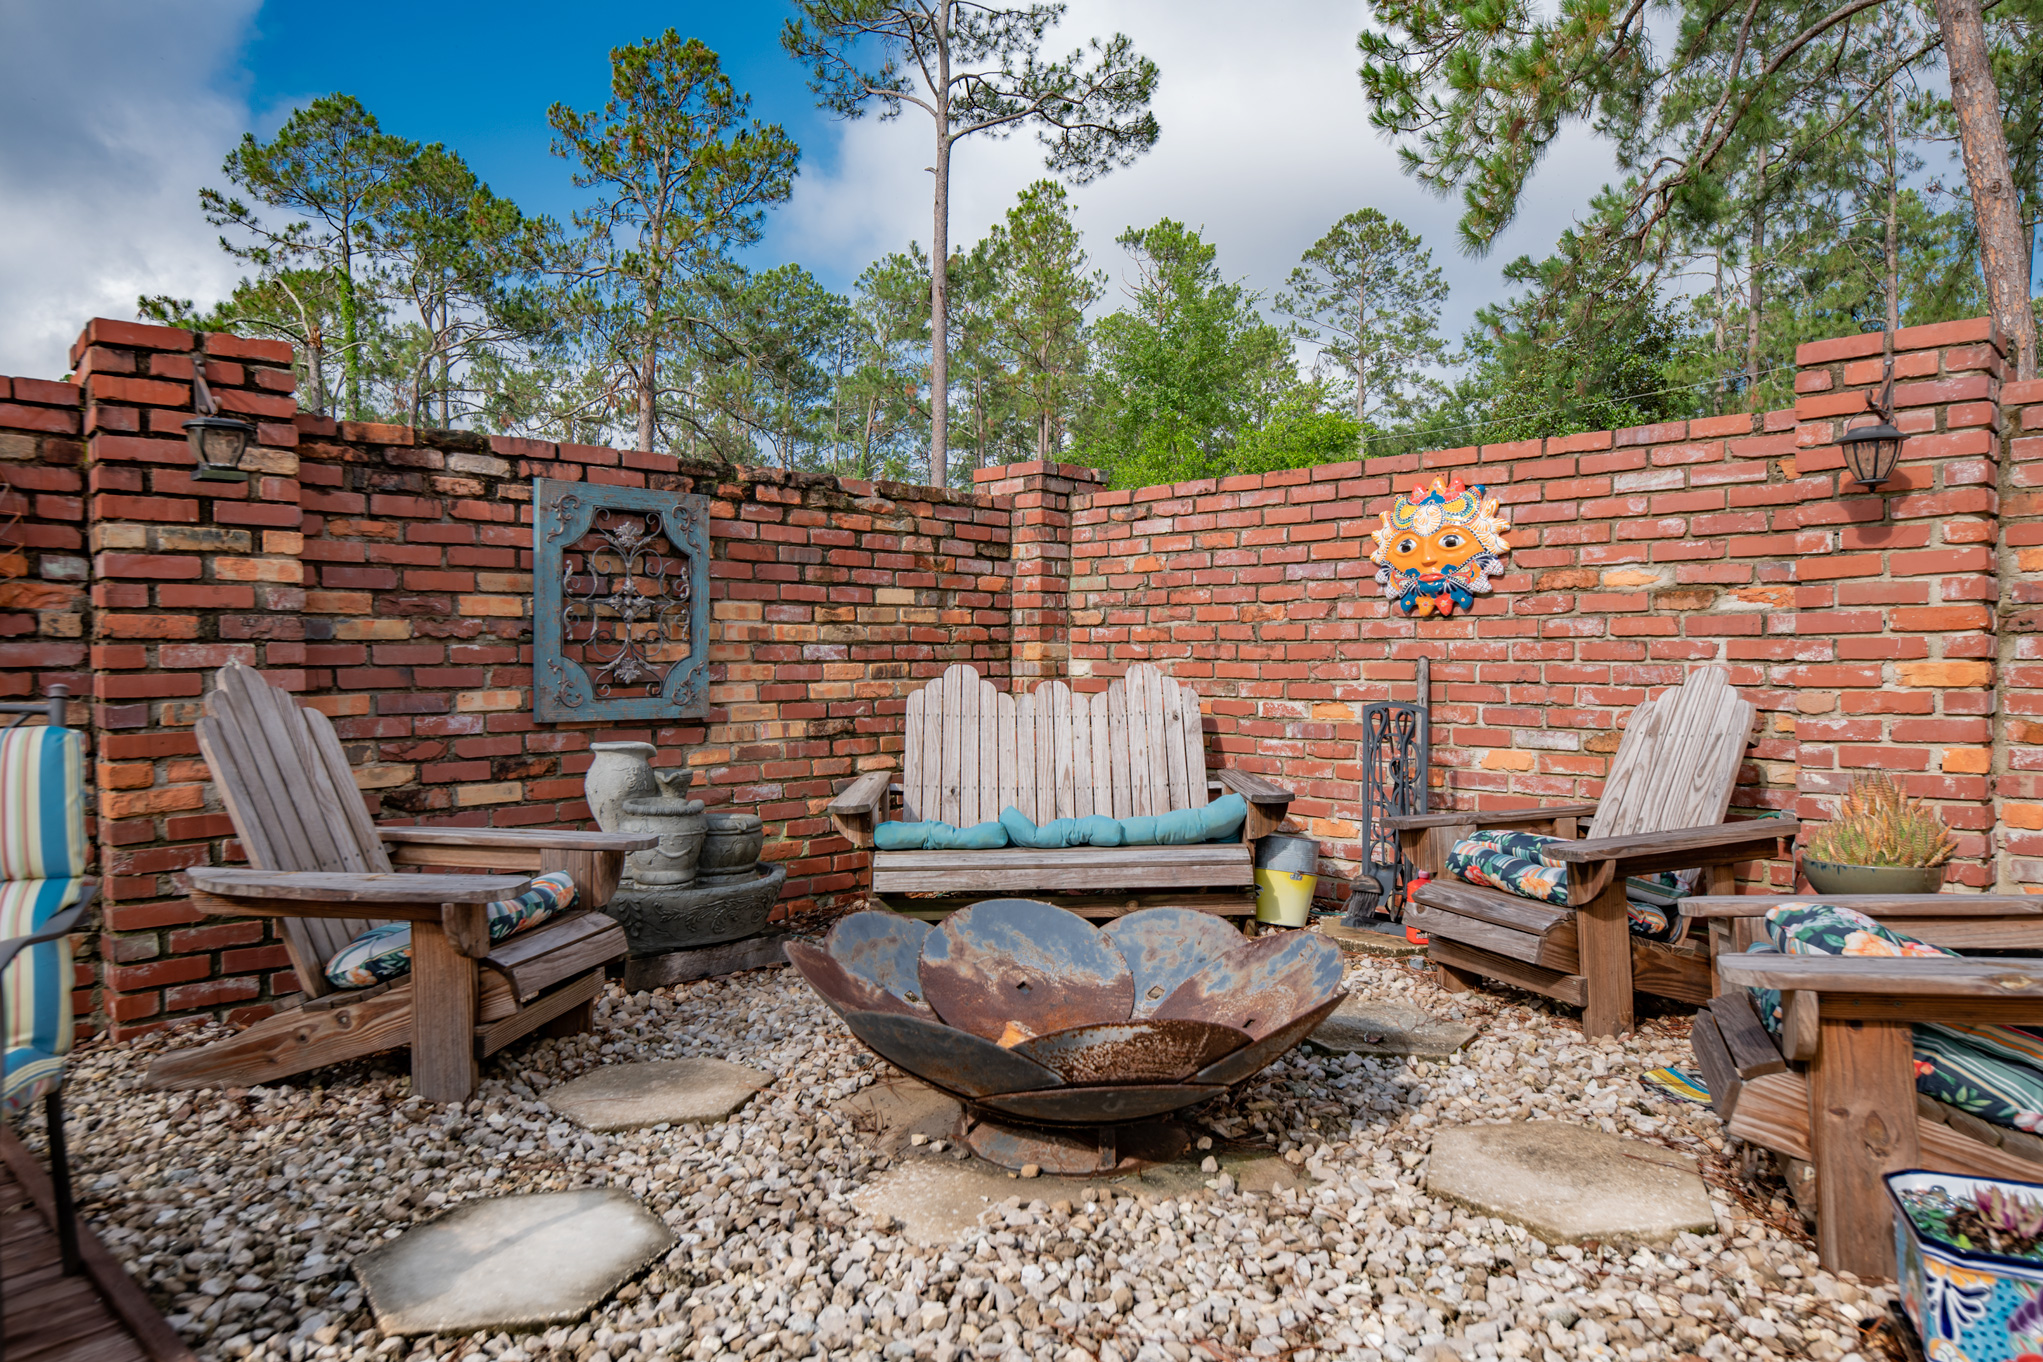 3-rivers-realty,3rr,911-morningside-drive,bainbridge-real-estate,bainbridggarealestate,mills-brock,three-rivers-realty,pool,fire-pit.jpg